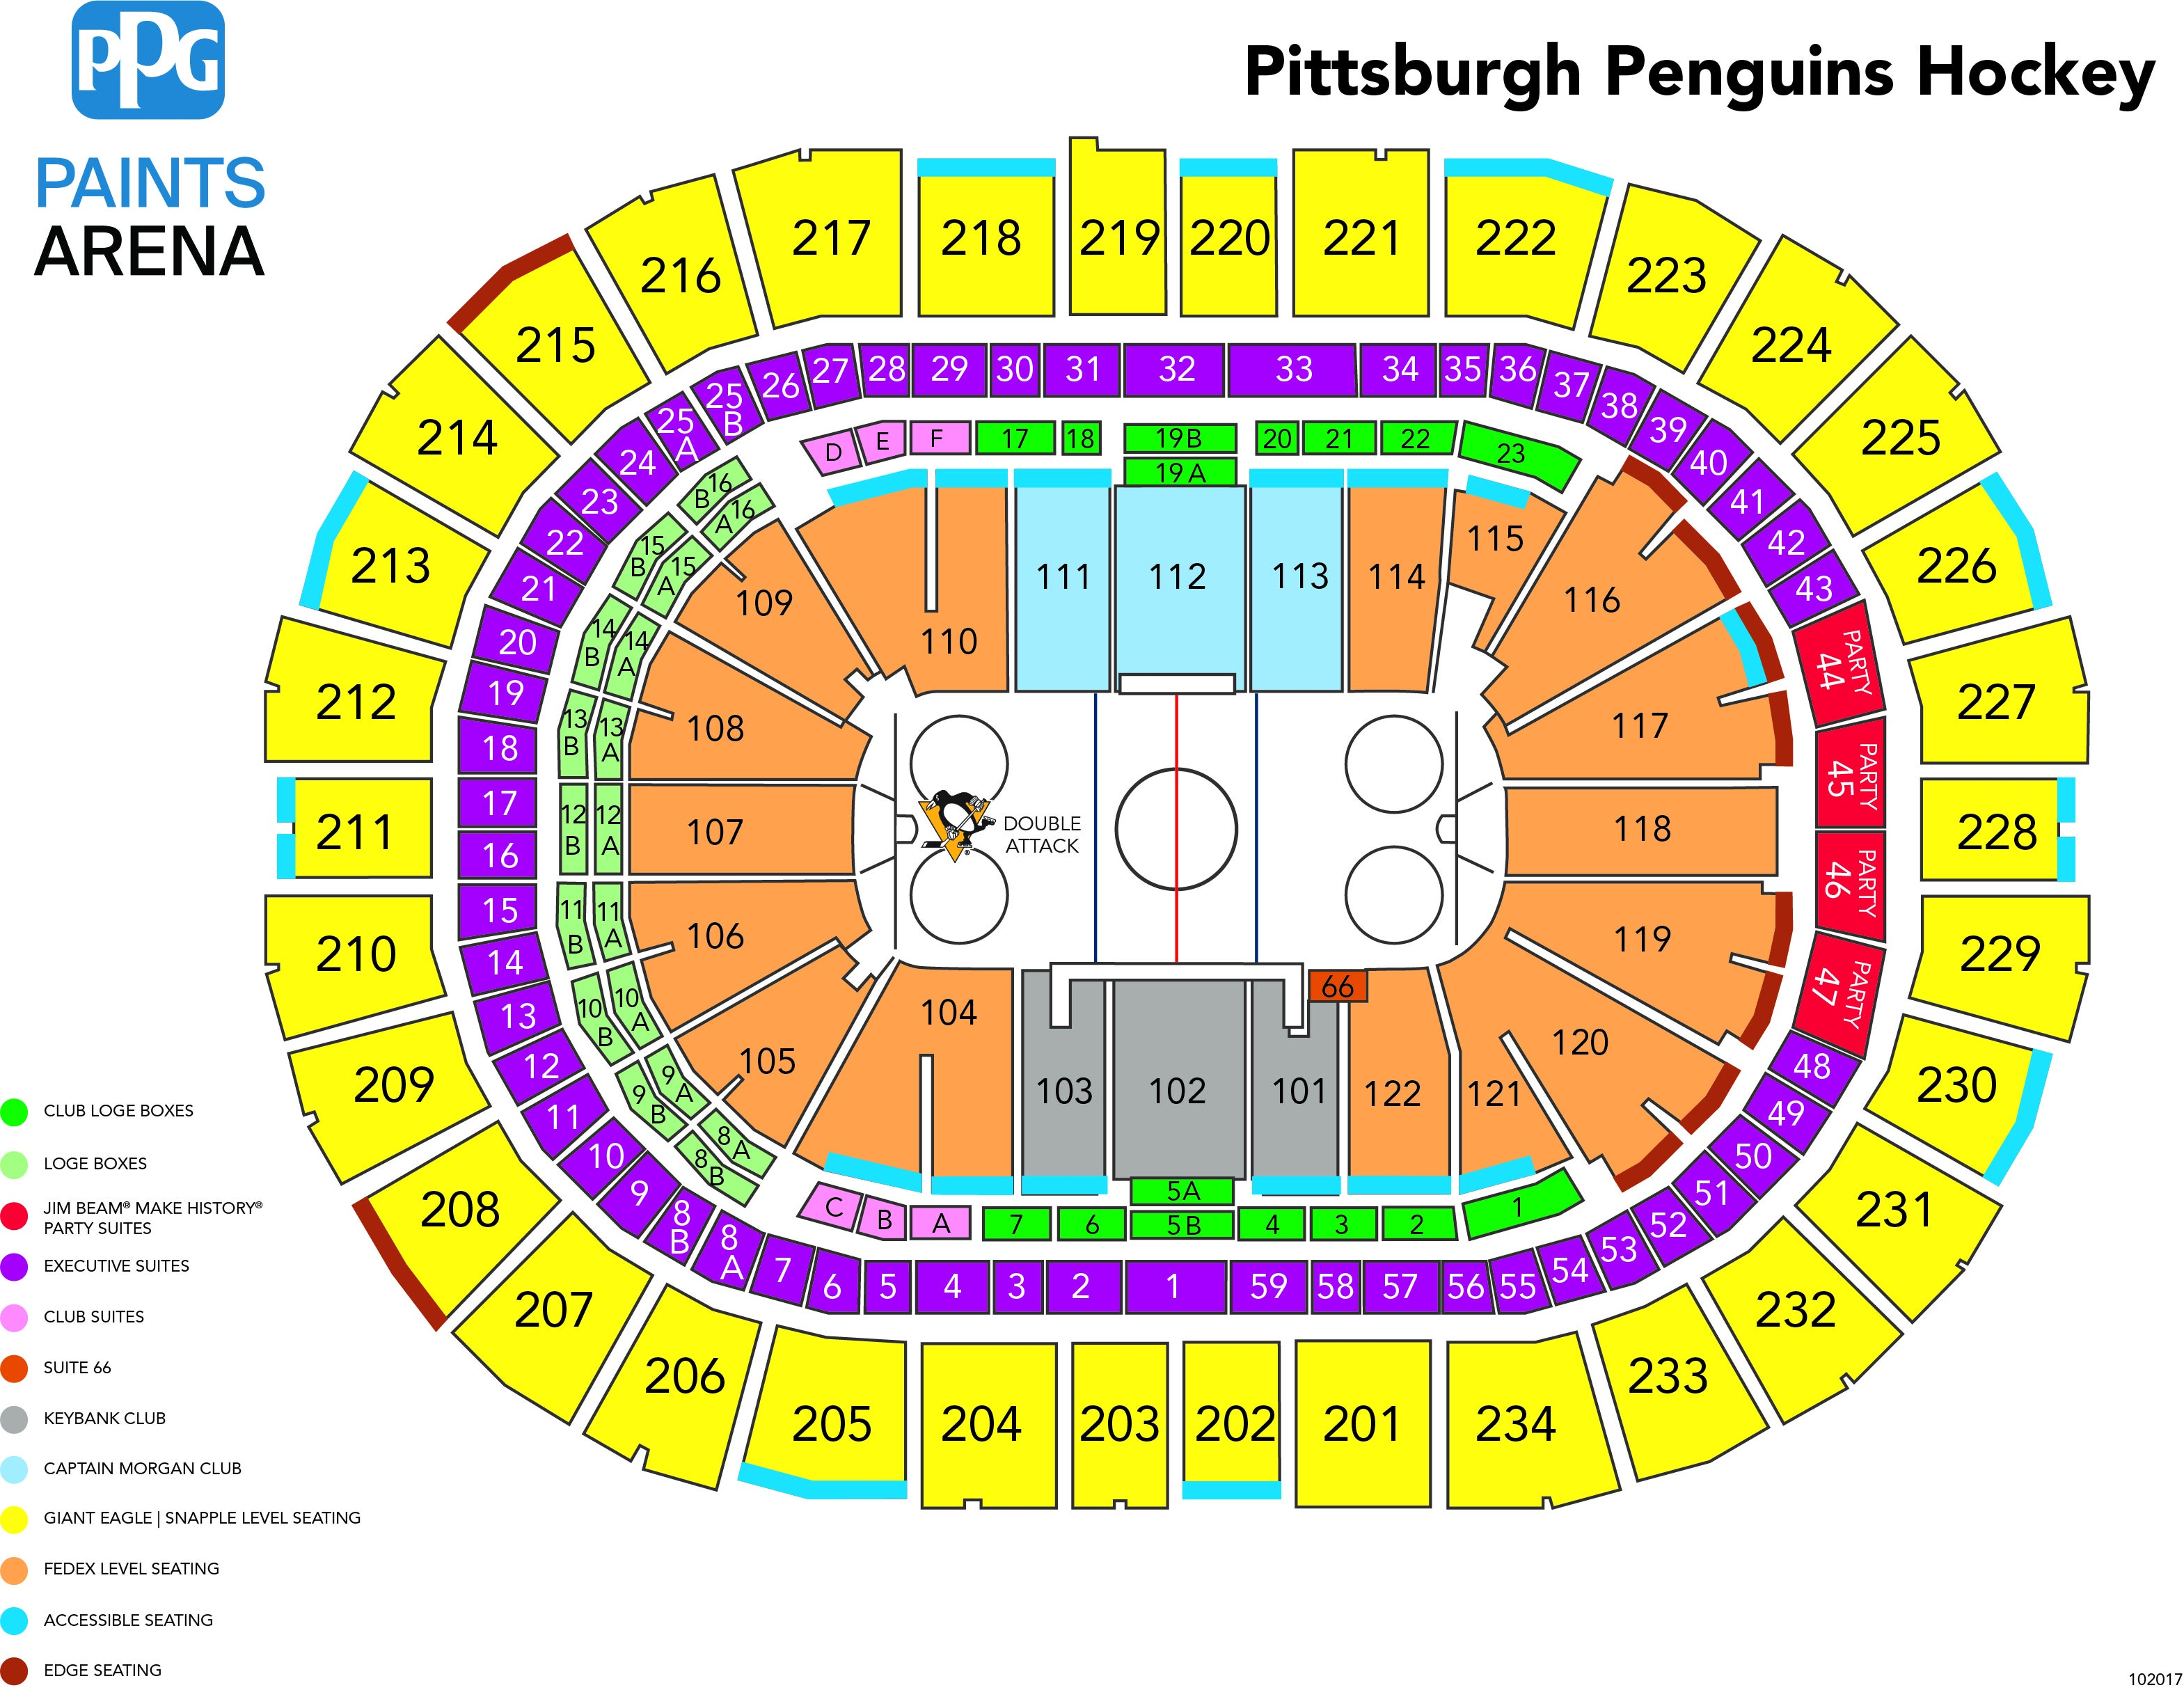 Pittsburgh penguins vs columbus blue jackets ppg paints arena